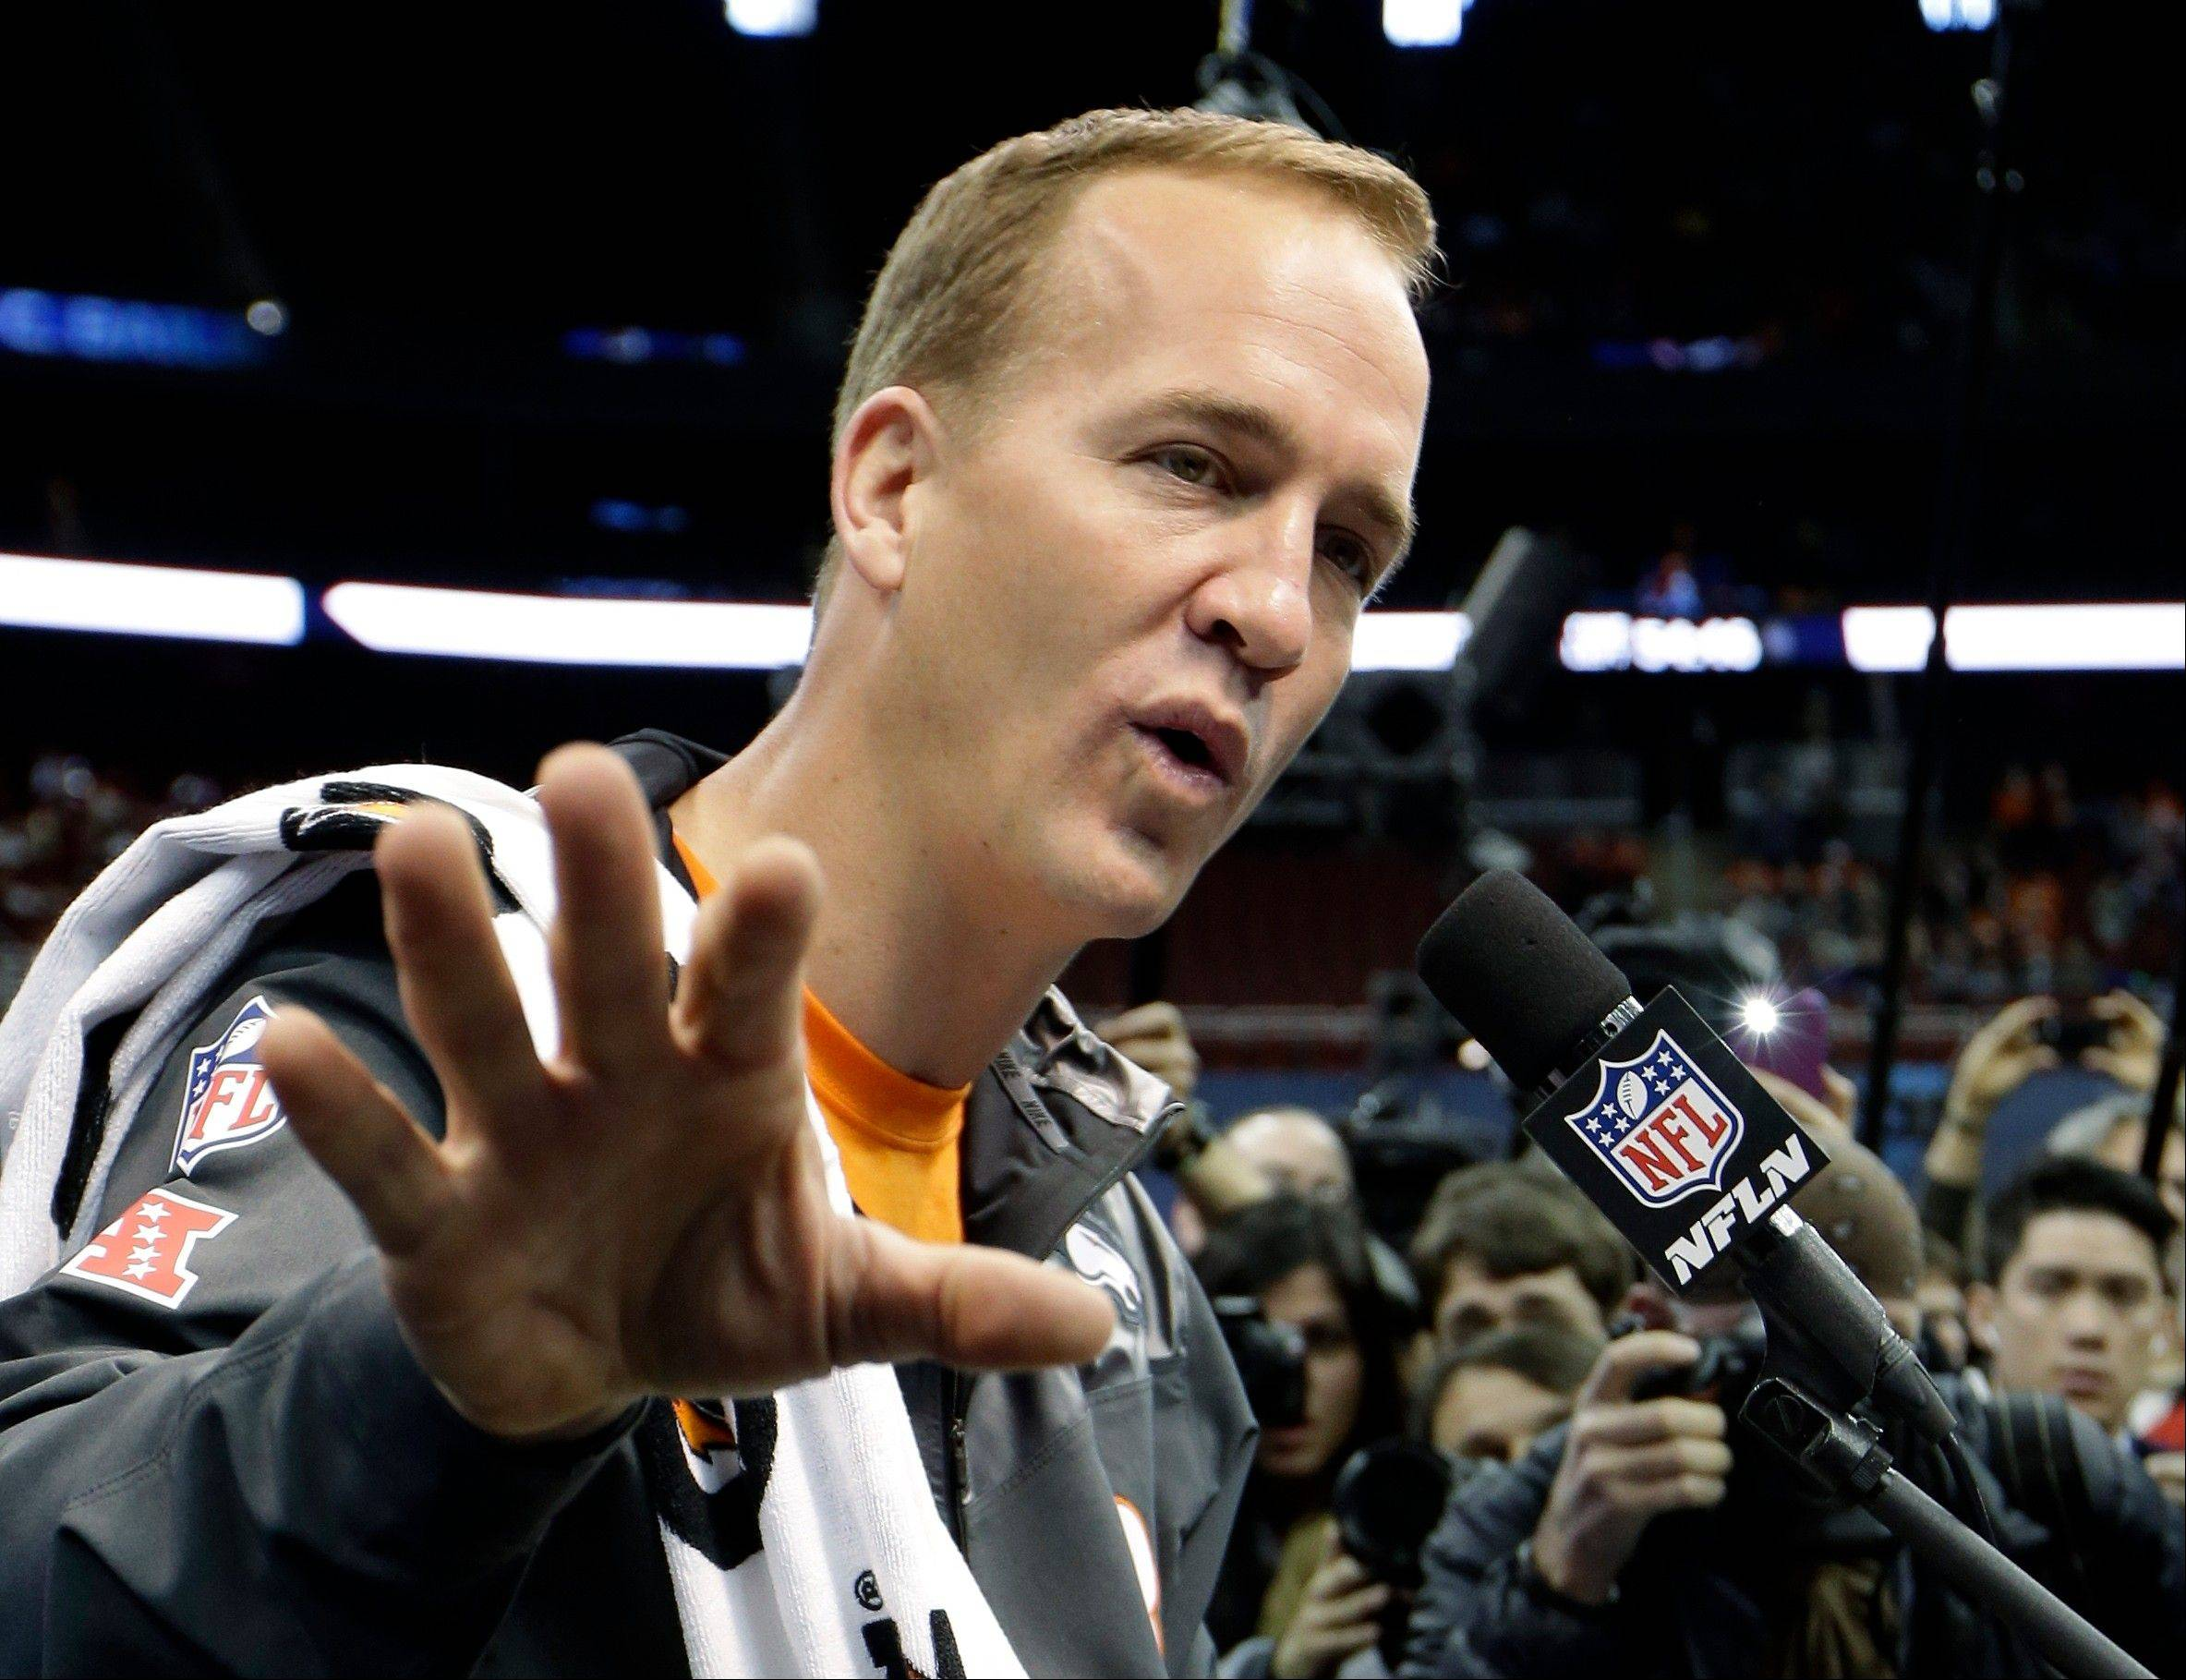 Denver Broncos� Peyton Manning answers a question during media day for the NFL Super Bowl XLVIII football game Tuesday, Jan. 28, 2014, in Newark, N.J.